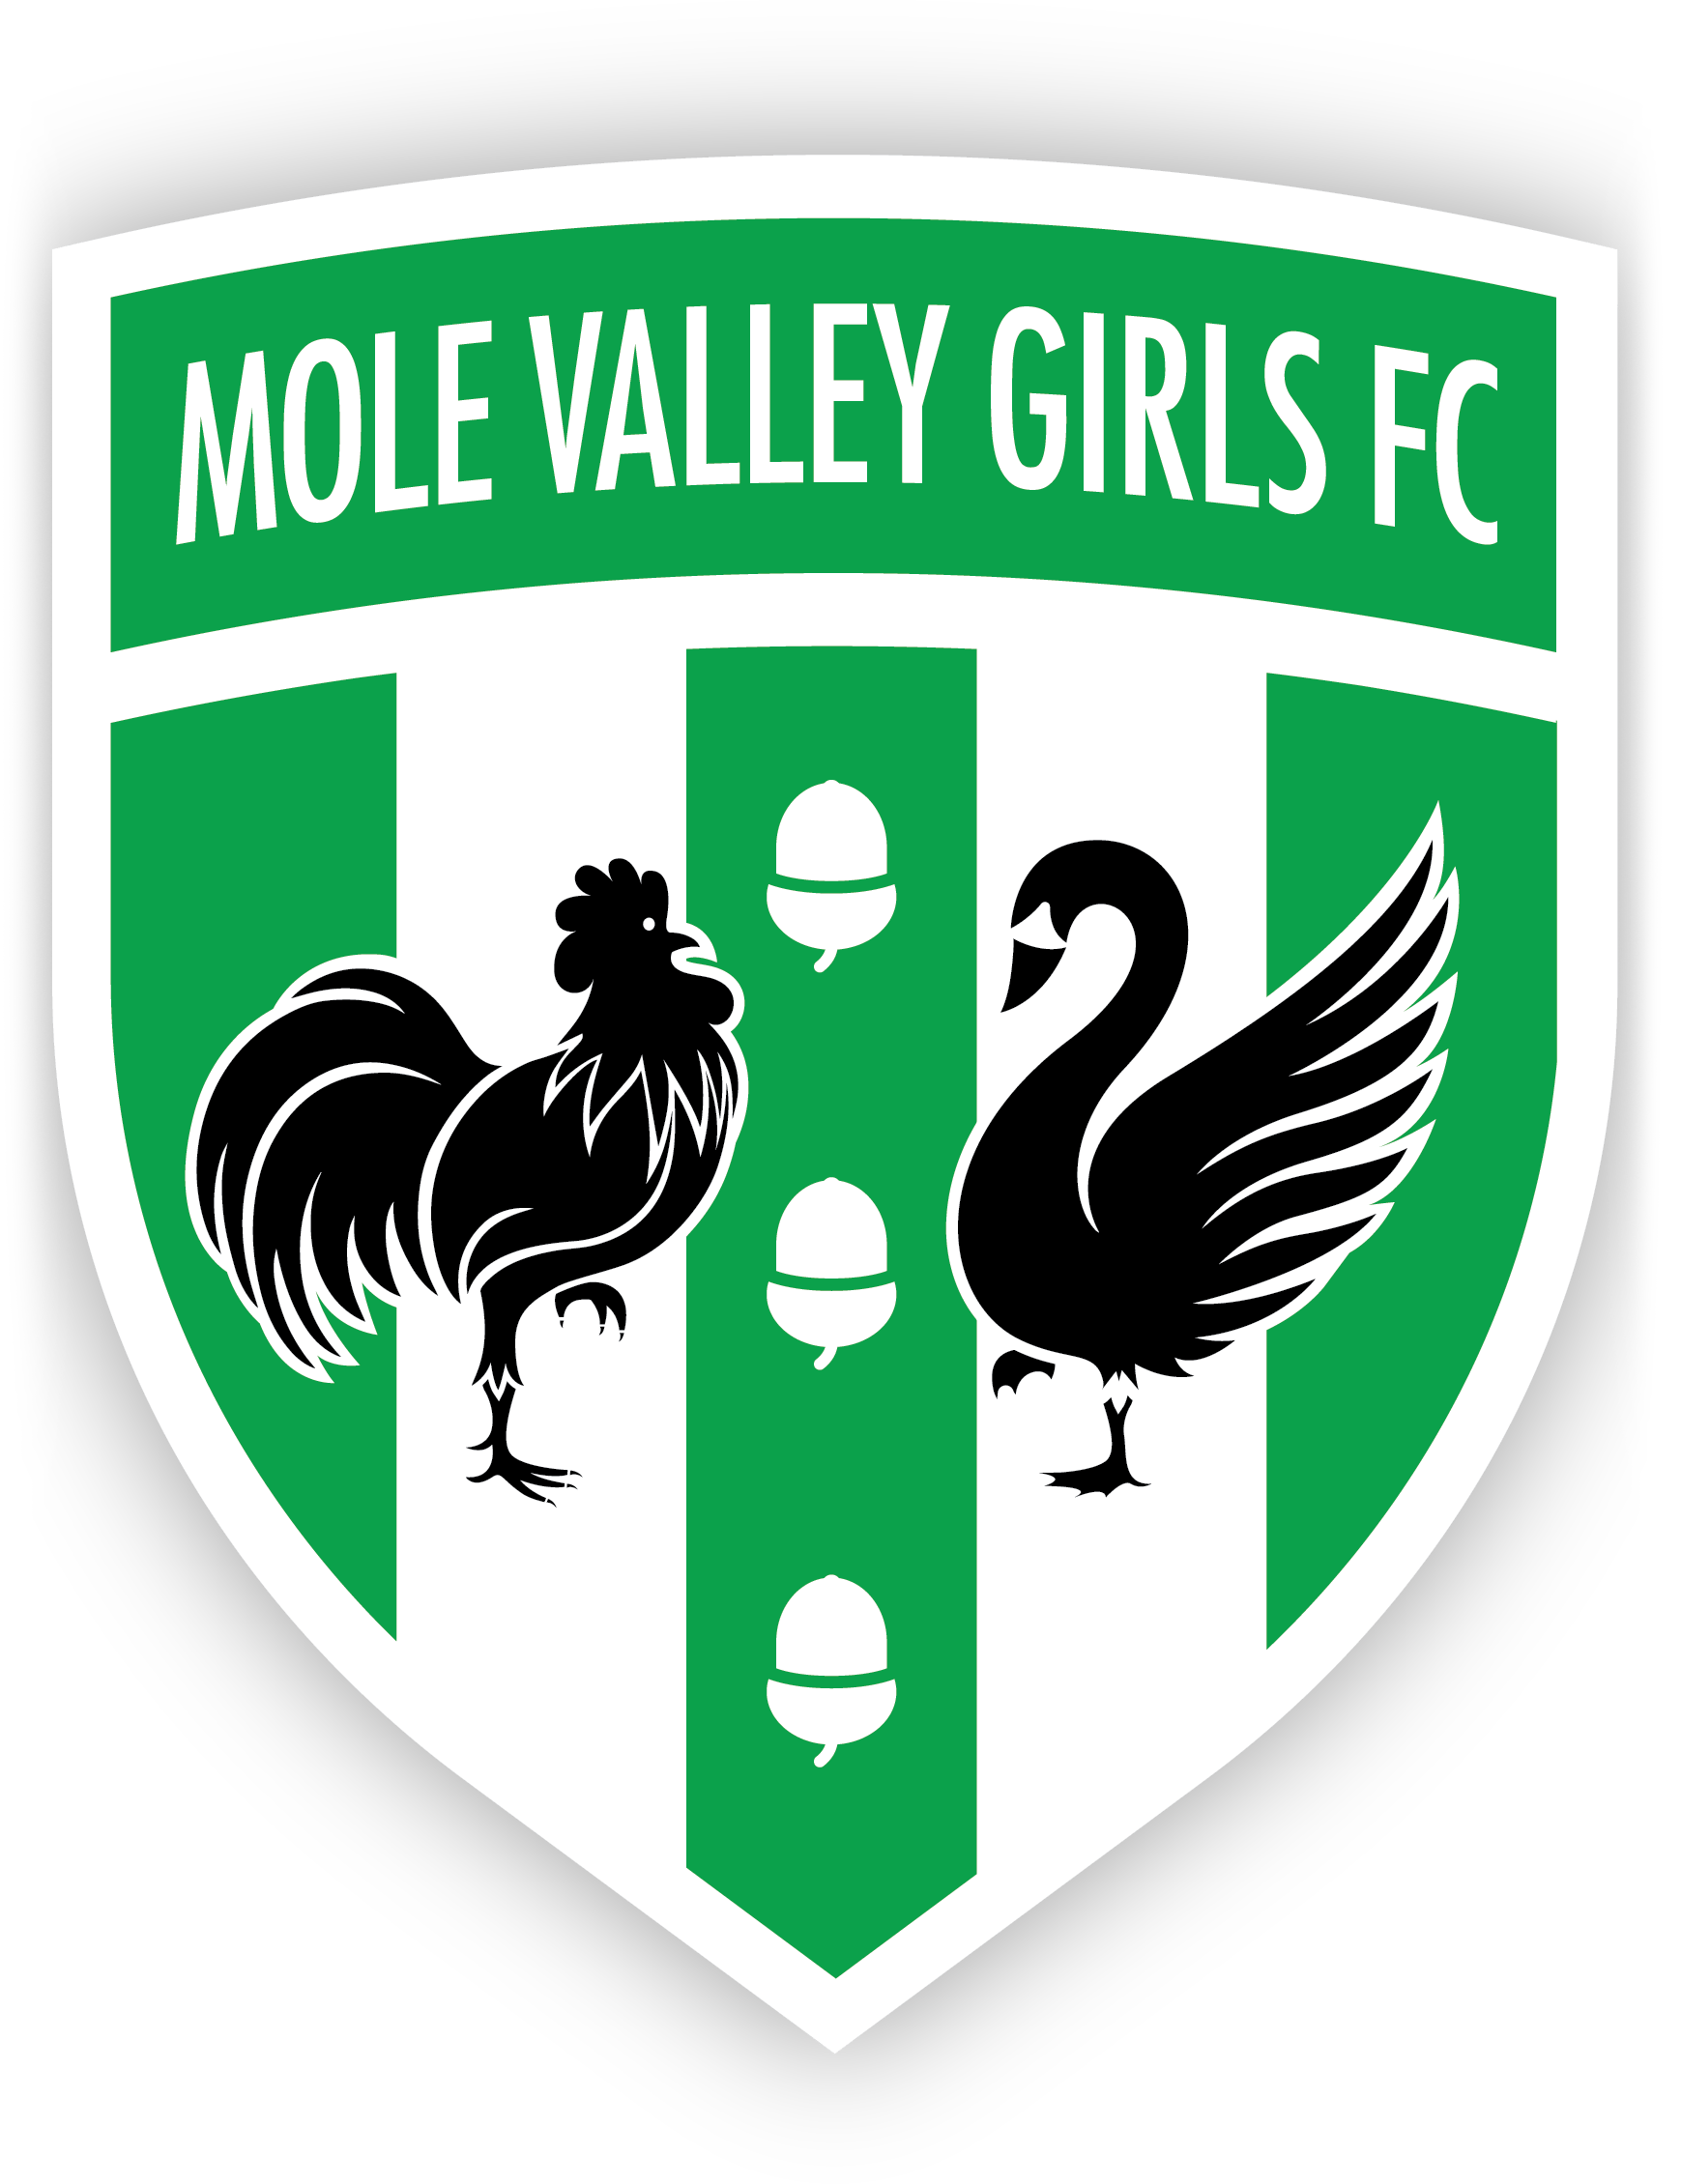 Mole Valley Girls FC